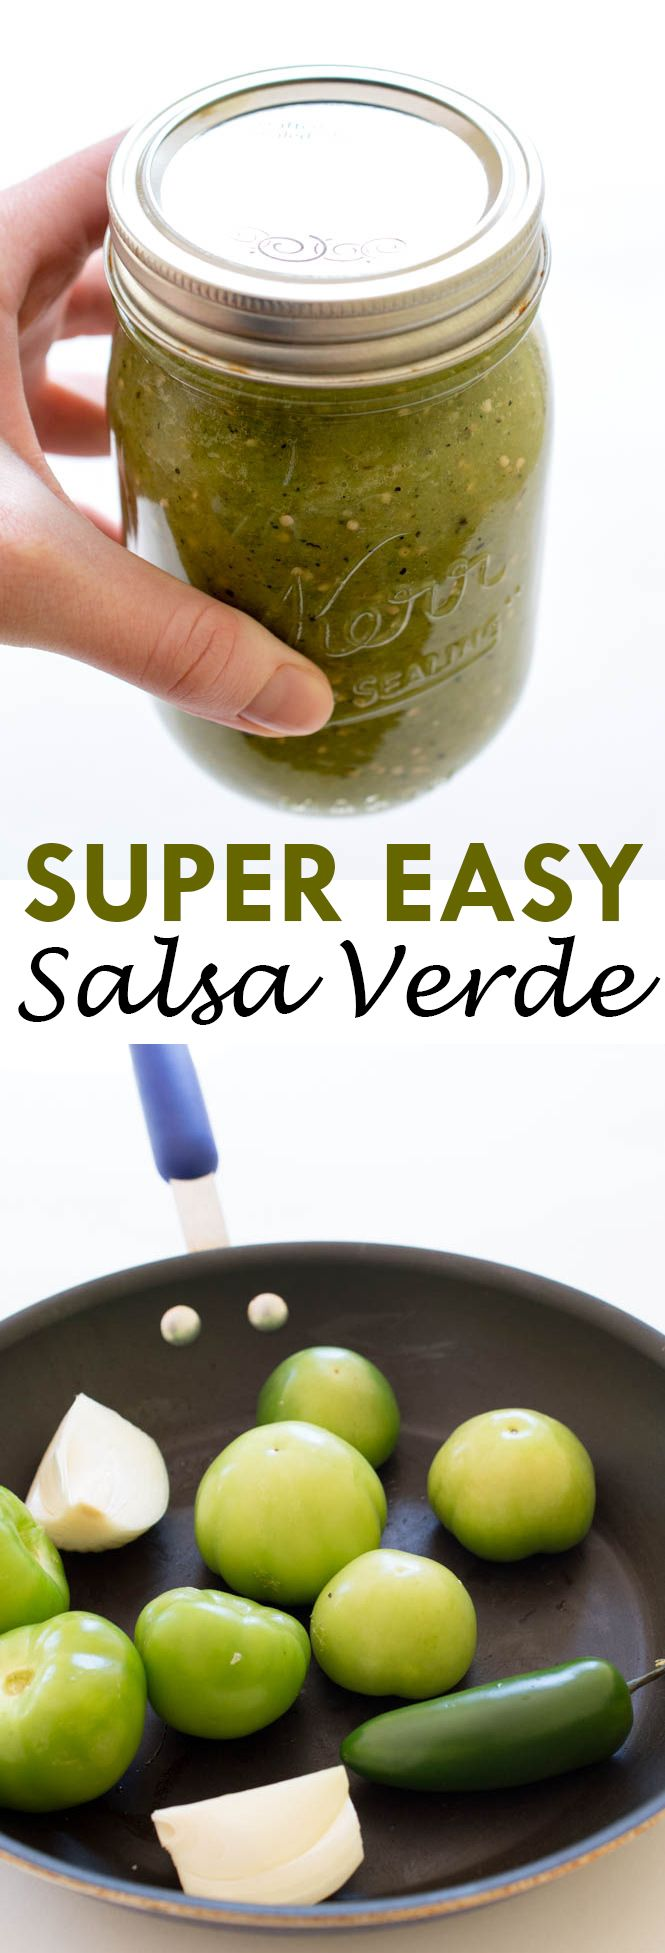 Super Easy Salsa Verde. Pan roasted for extra flavor and pureed with garlic, jalapeno, cilantro and lime juice. Only 7 ingredients! | chefsavvy.com #recipe #salsa #verde #tomatillo